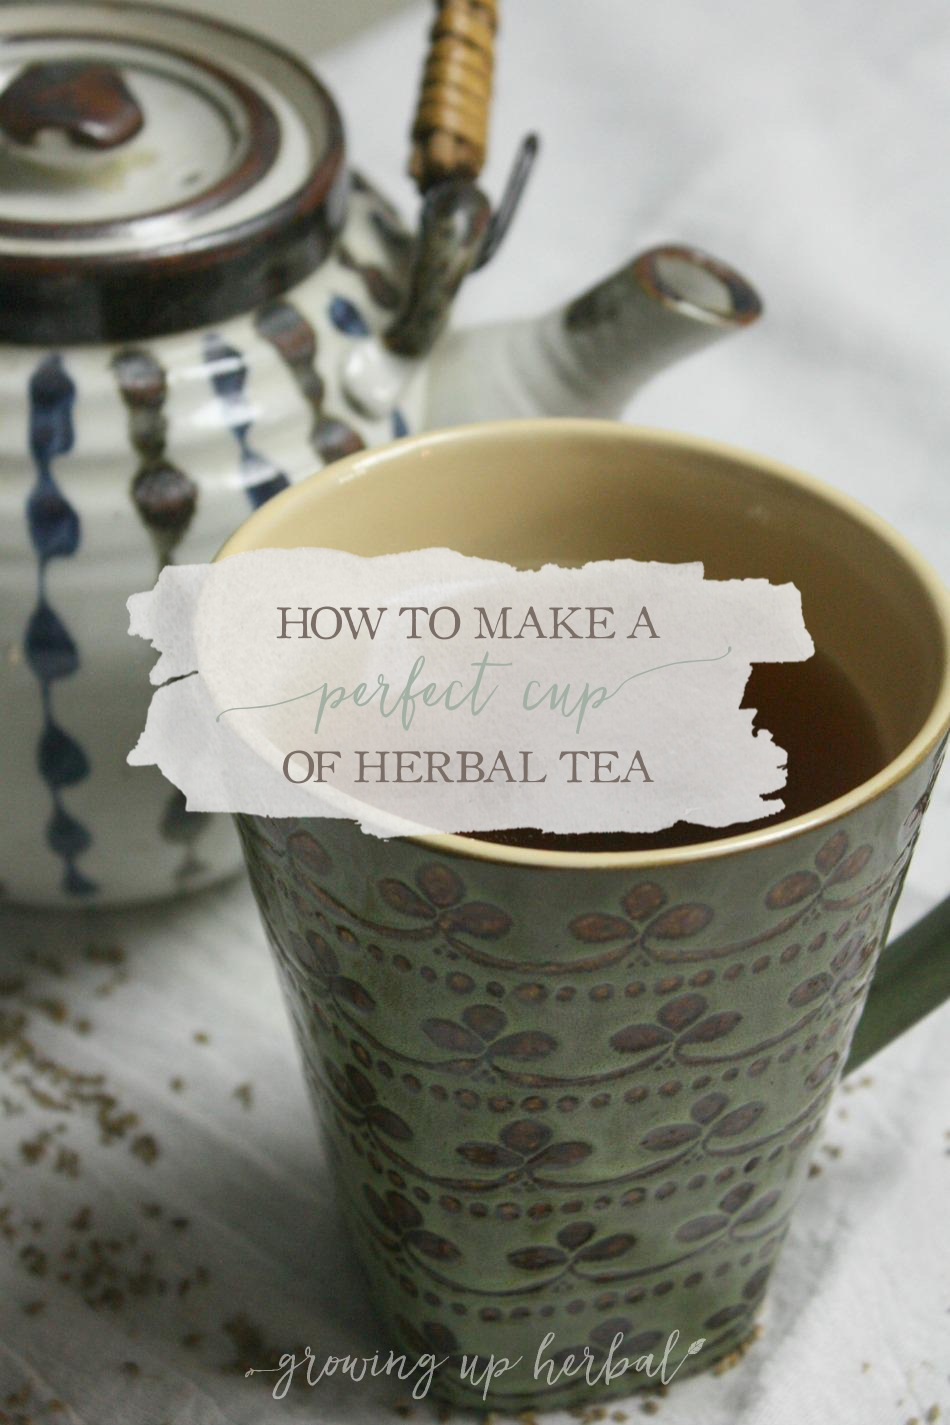 How To Make A Perfect Cup Of Herbal Tea | Growing Up Herbal | There are many ways to make a cup of tea, but if you want to make the perfect cup, that's a different story!